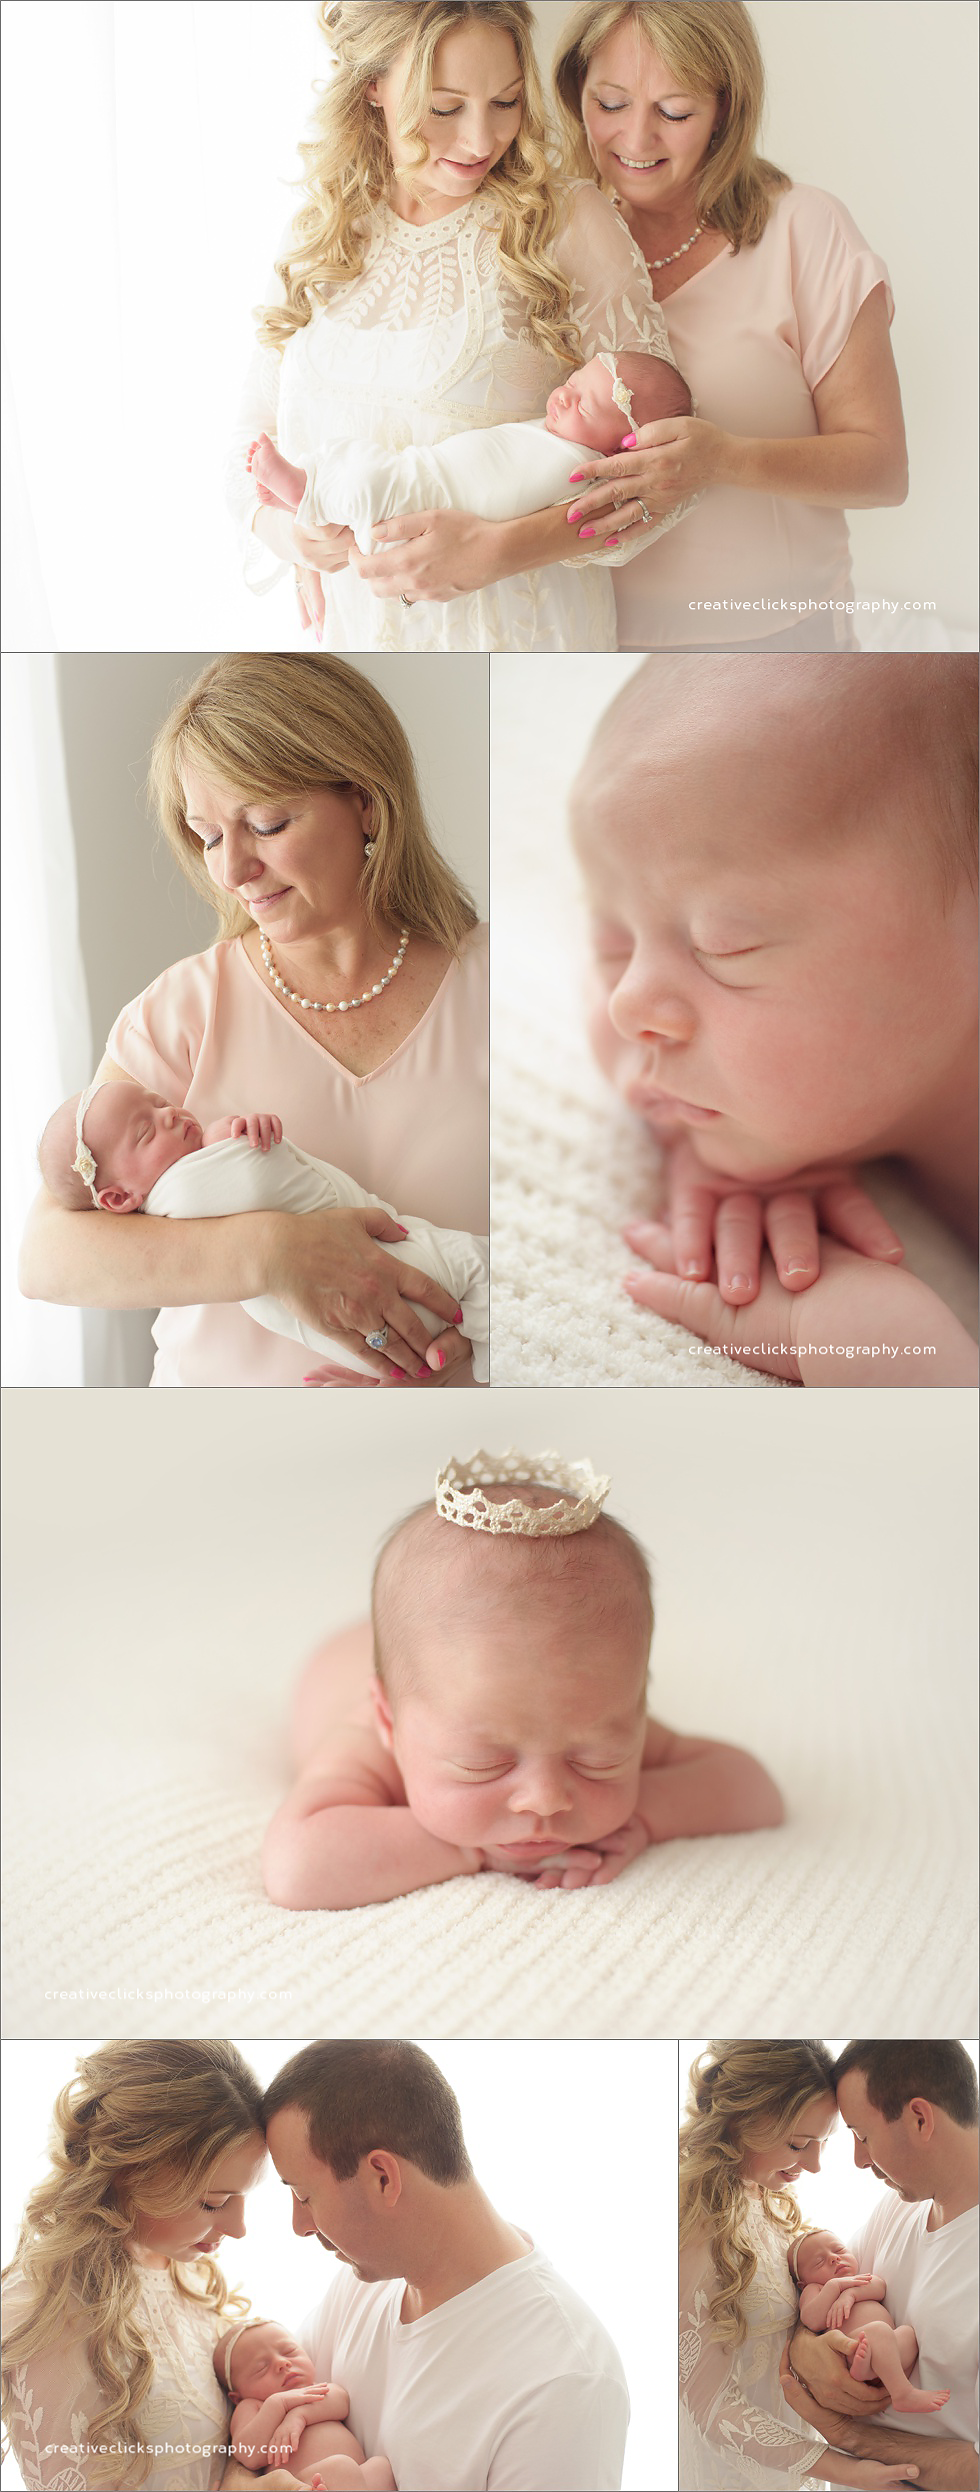 parent and grandparents images with newborn baby girl